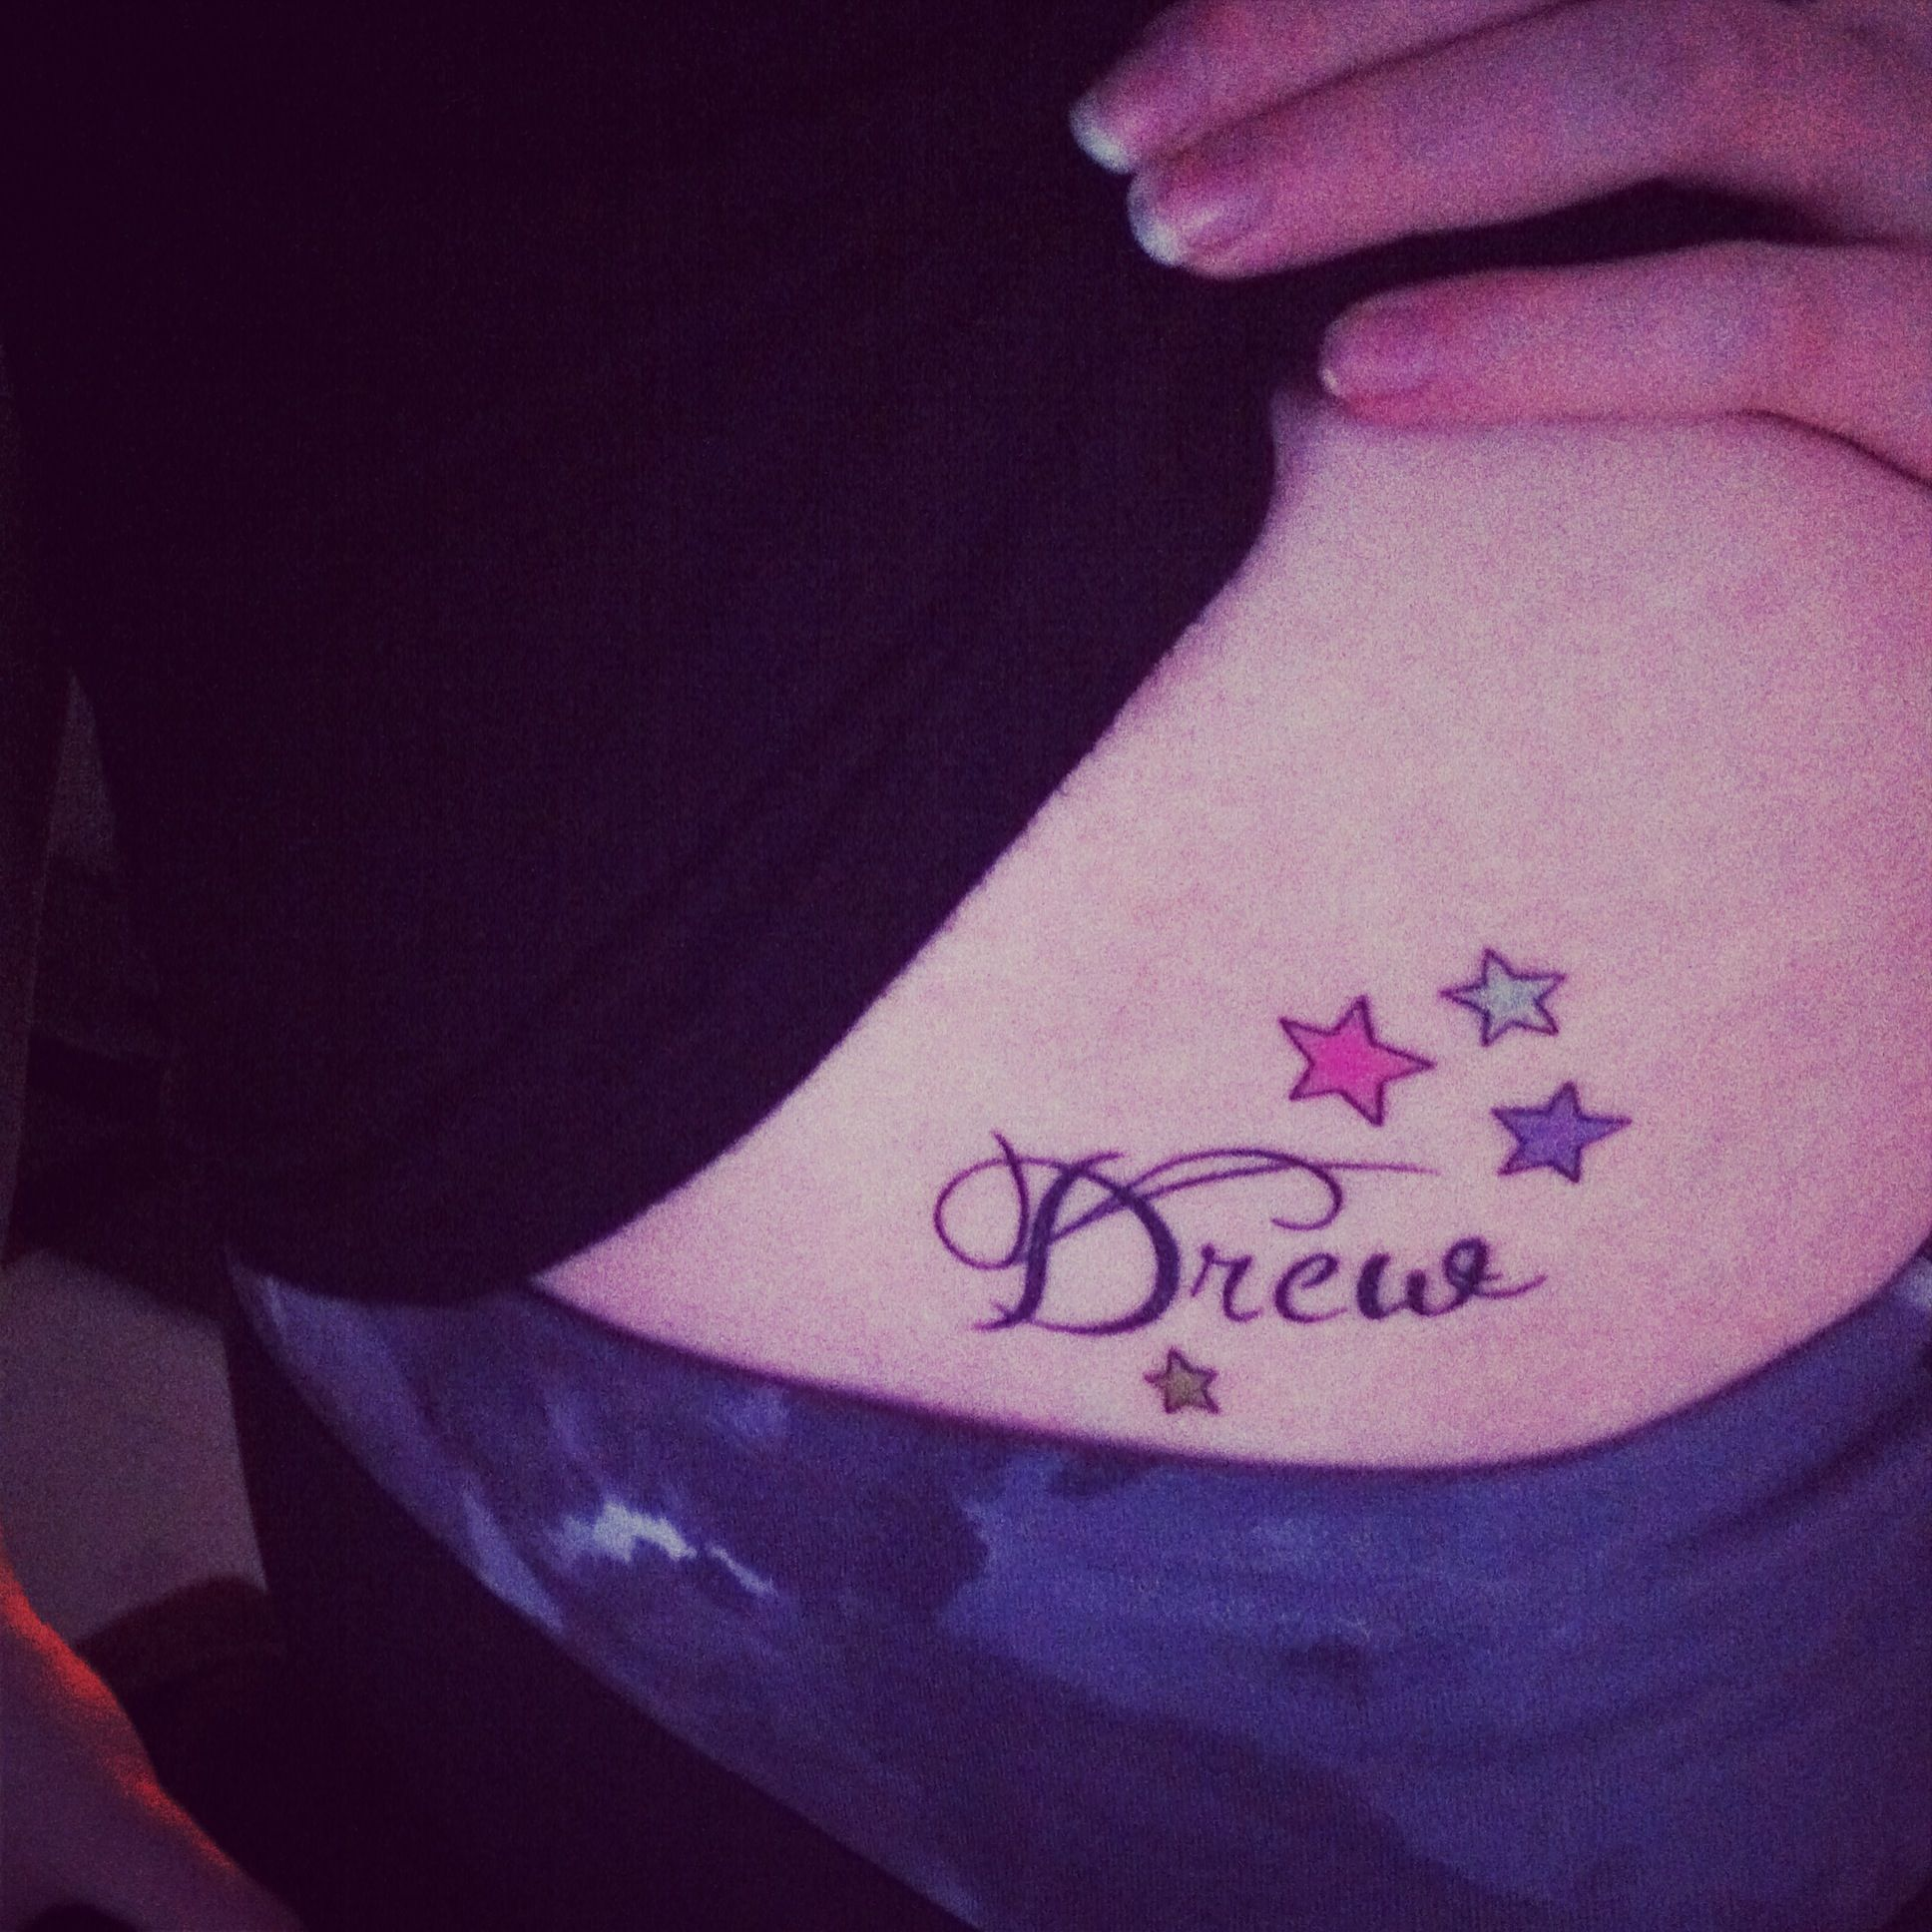 Hip tattoo of my last name. The Stars represent my family